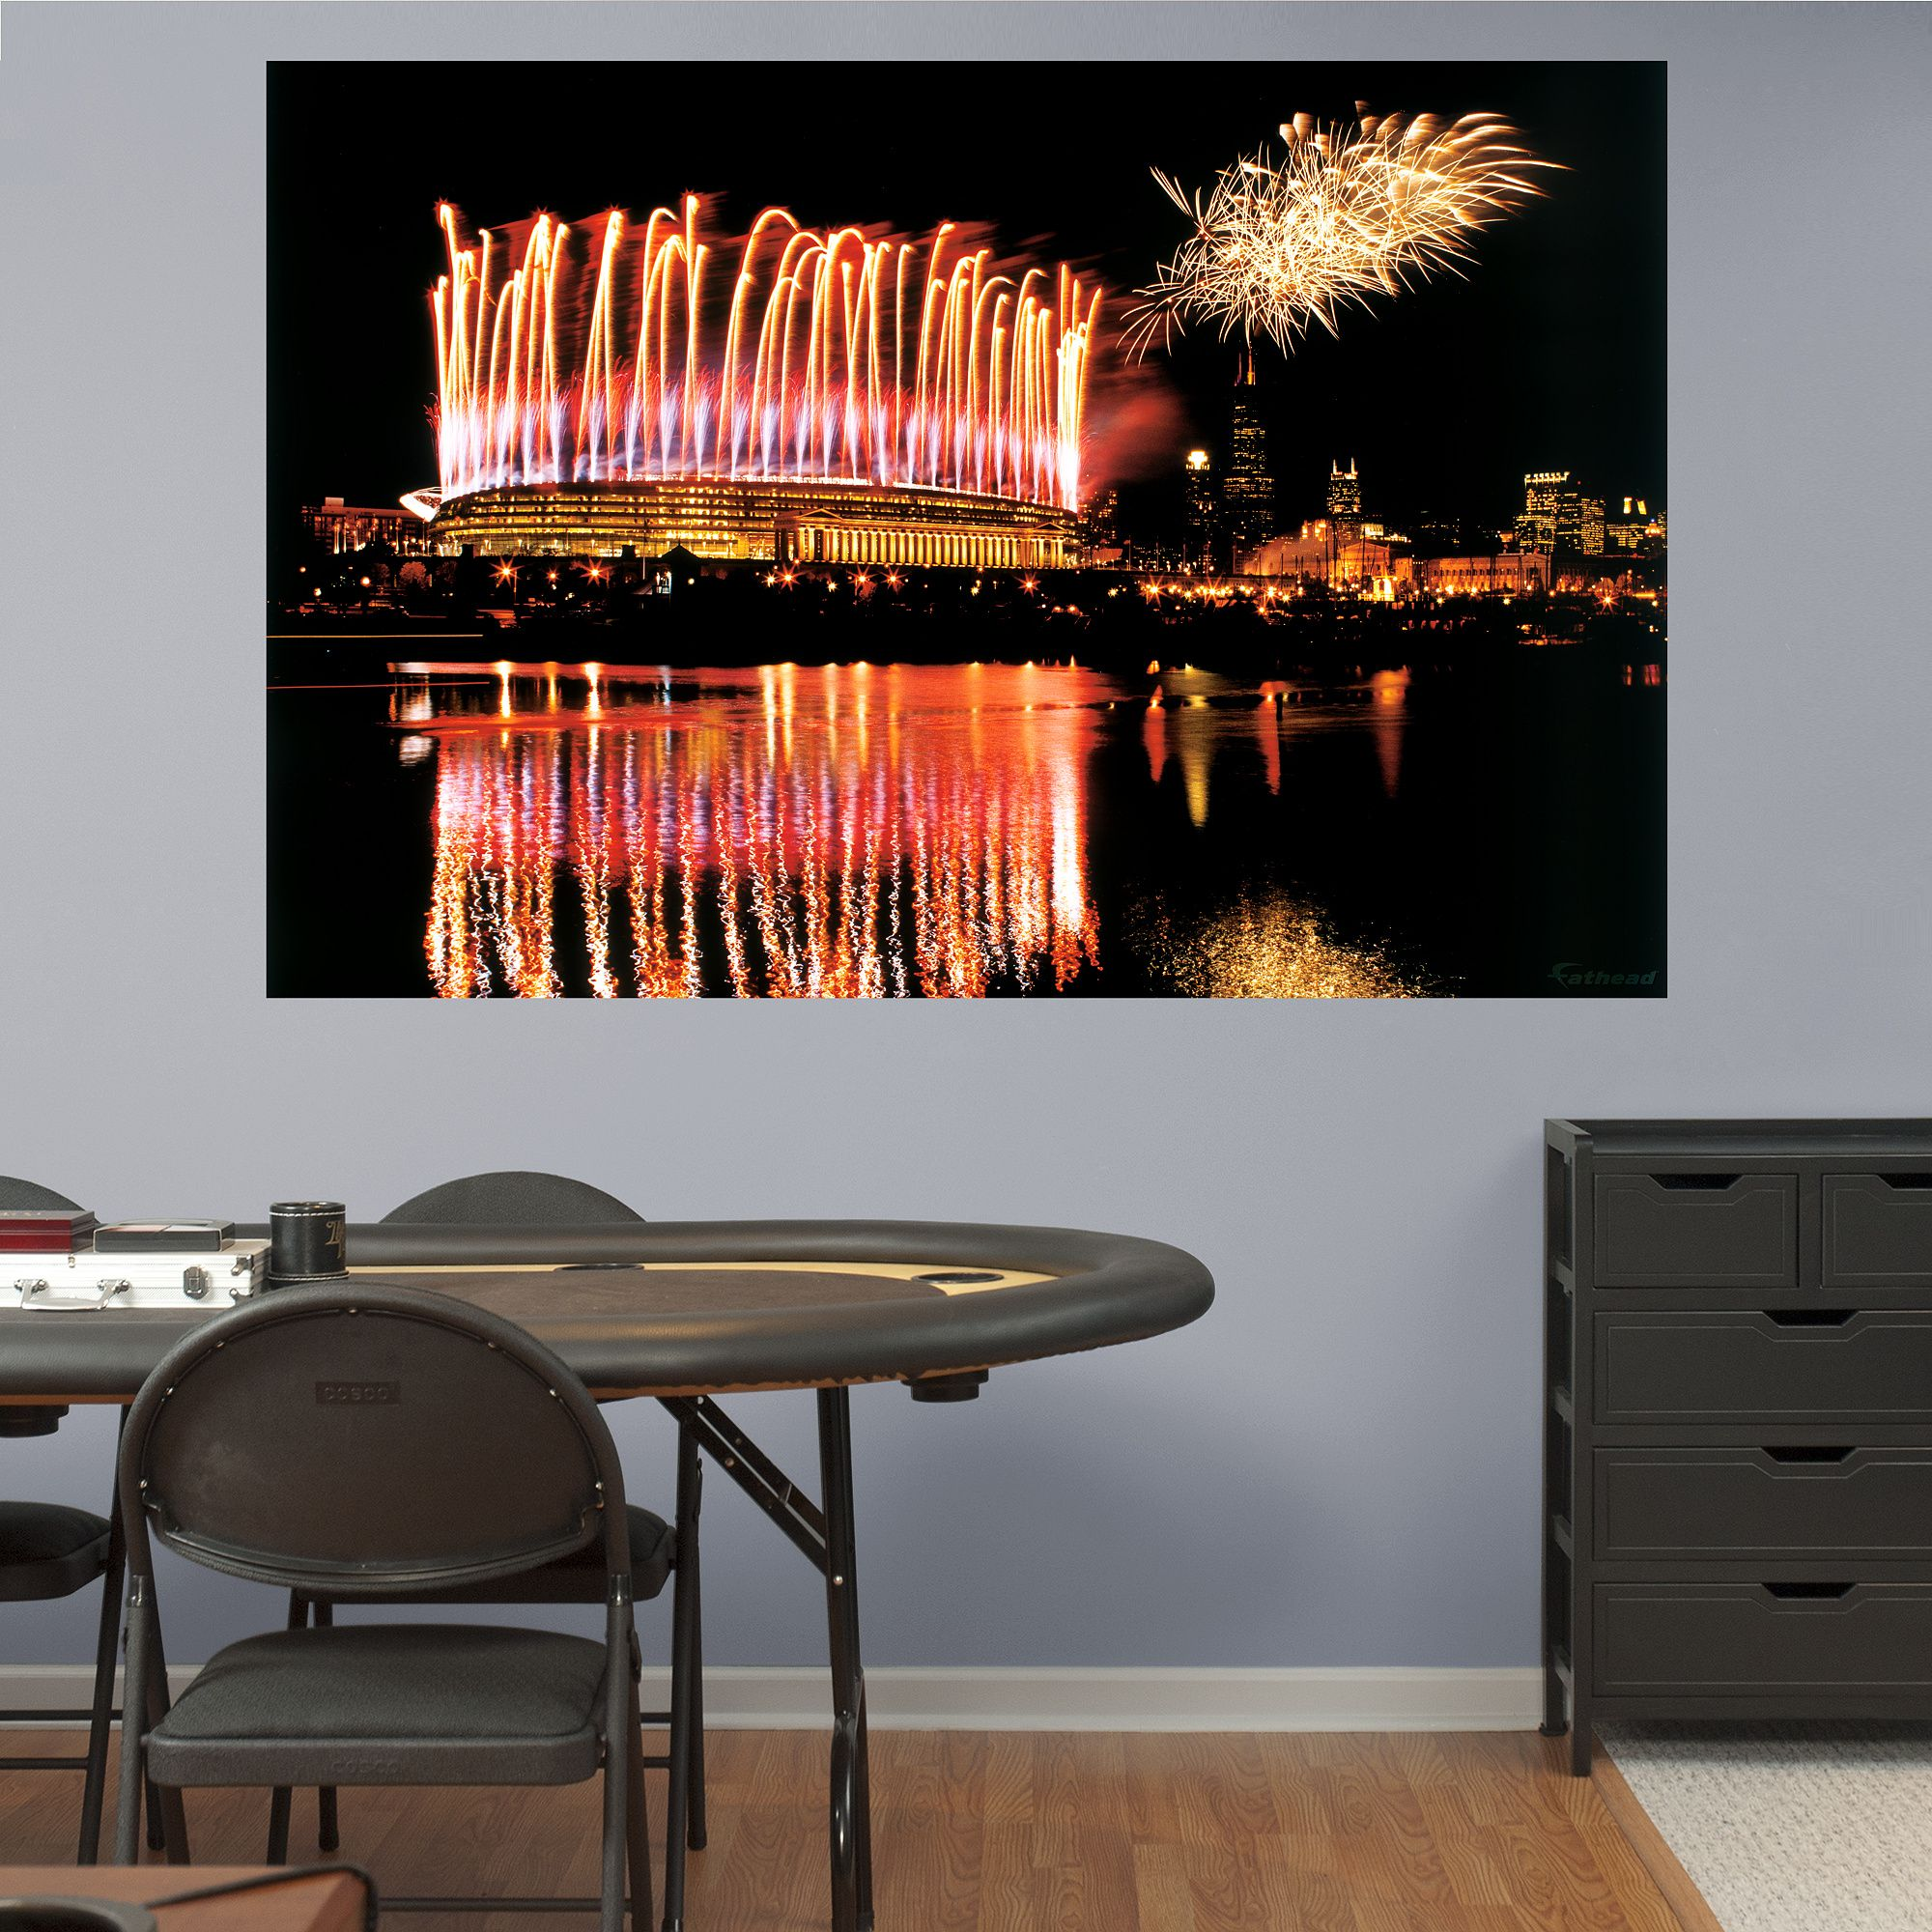 Soldier Field Fireworks Mural Fathead Wall Graphic | Chicago Bears Wall  Decal | Sports Décor | Part 96